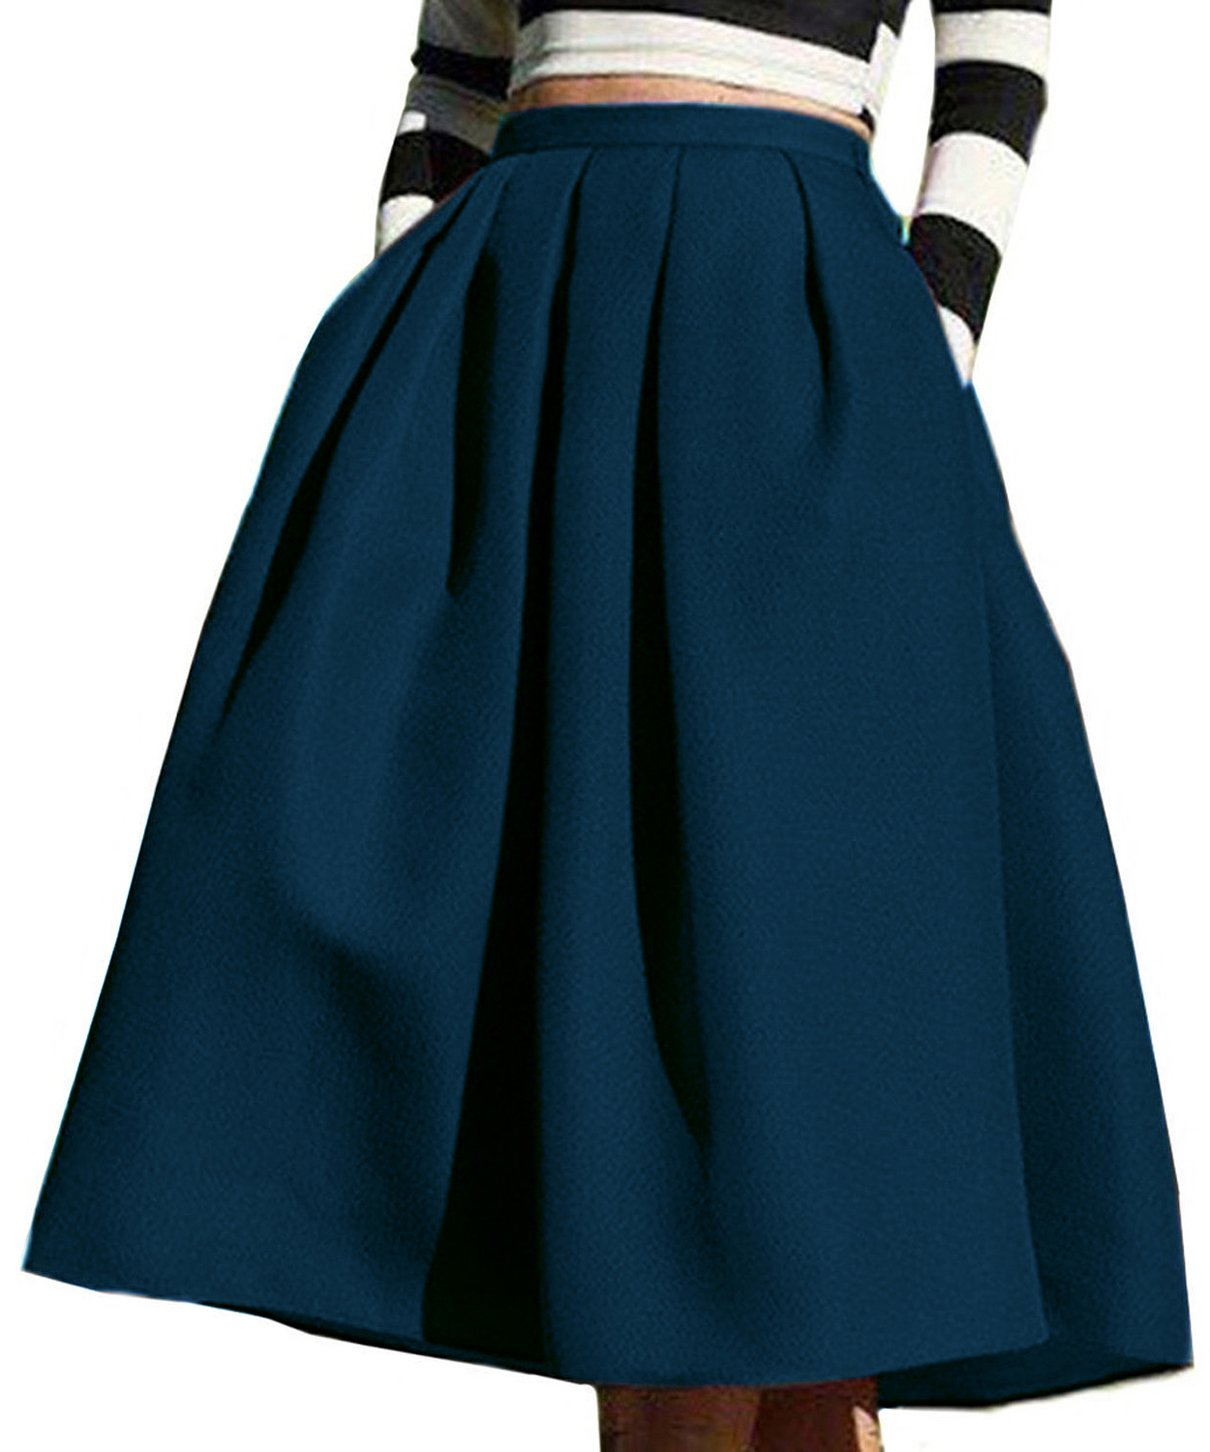 Face N Face Women's High Waisted A line Street Skirt Skater Pleated Full Midi Skirt Small Navy